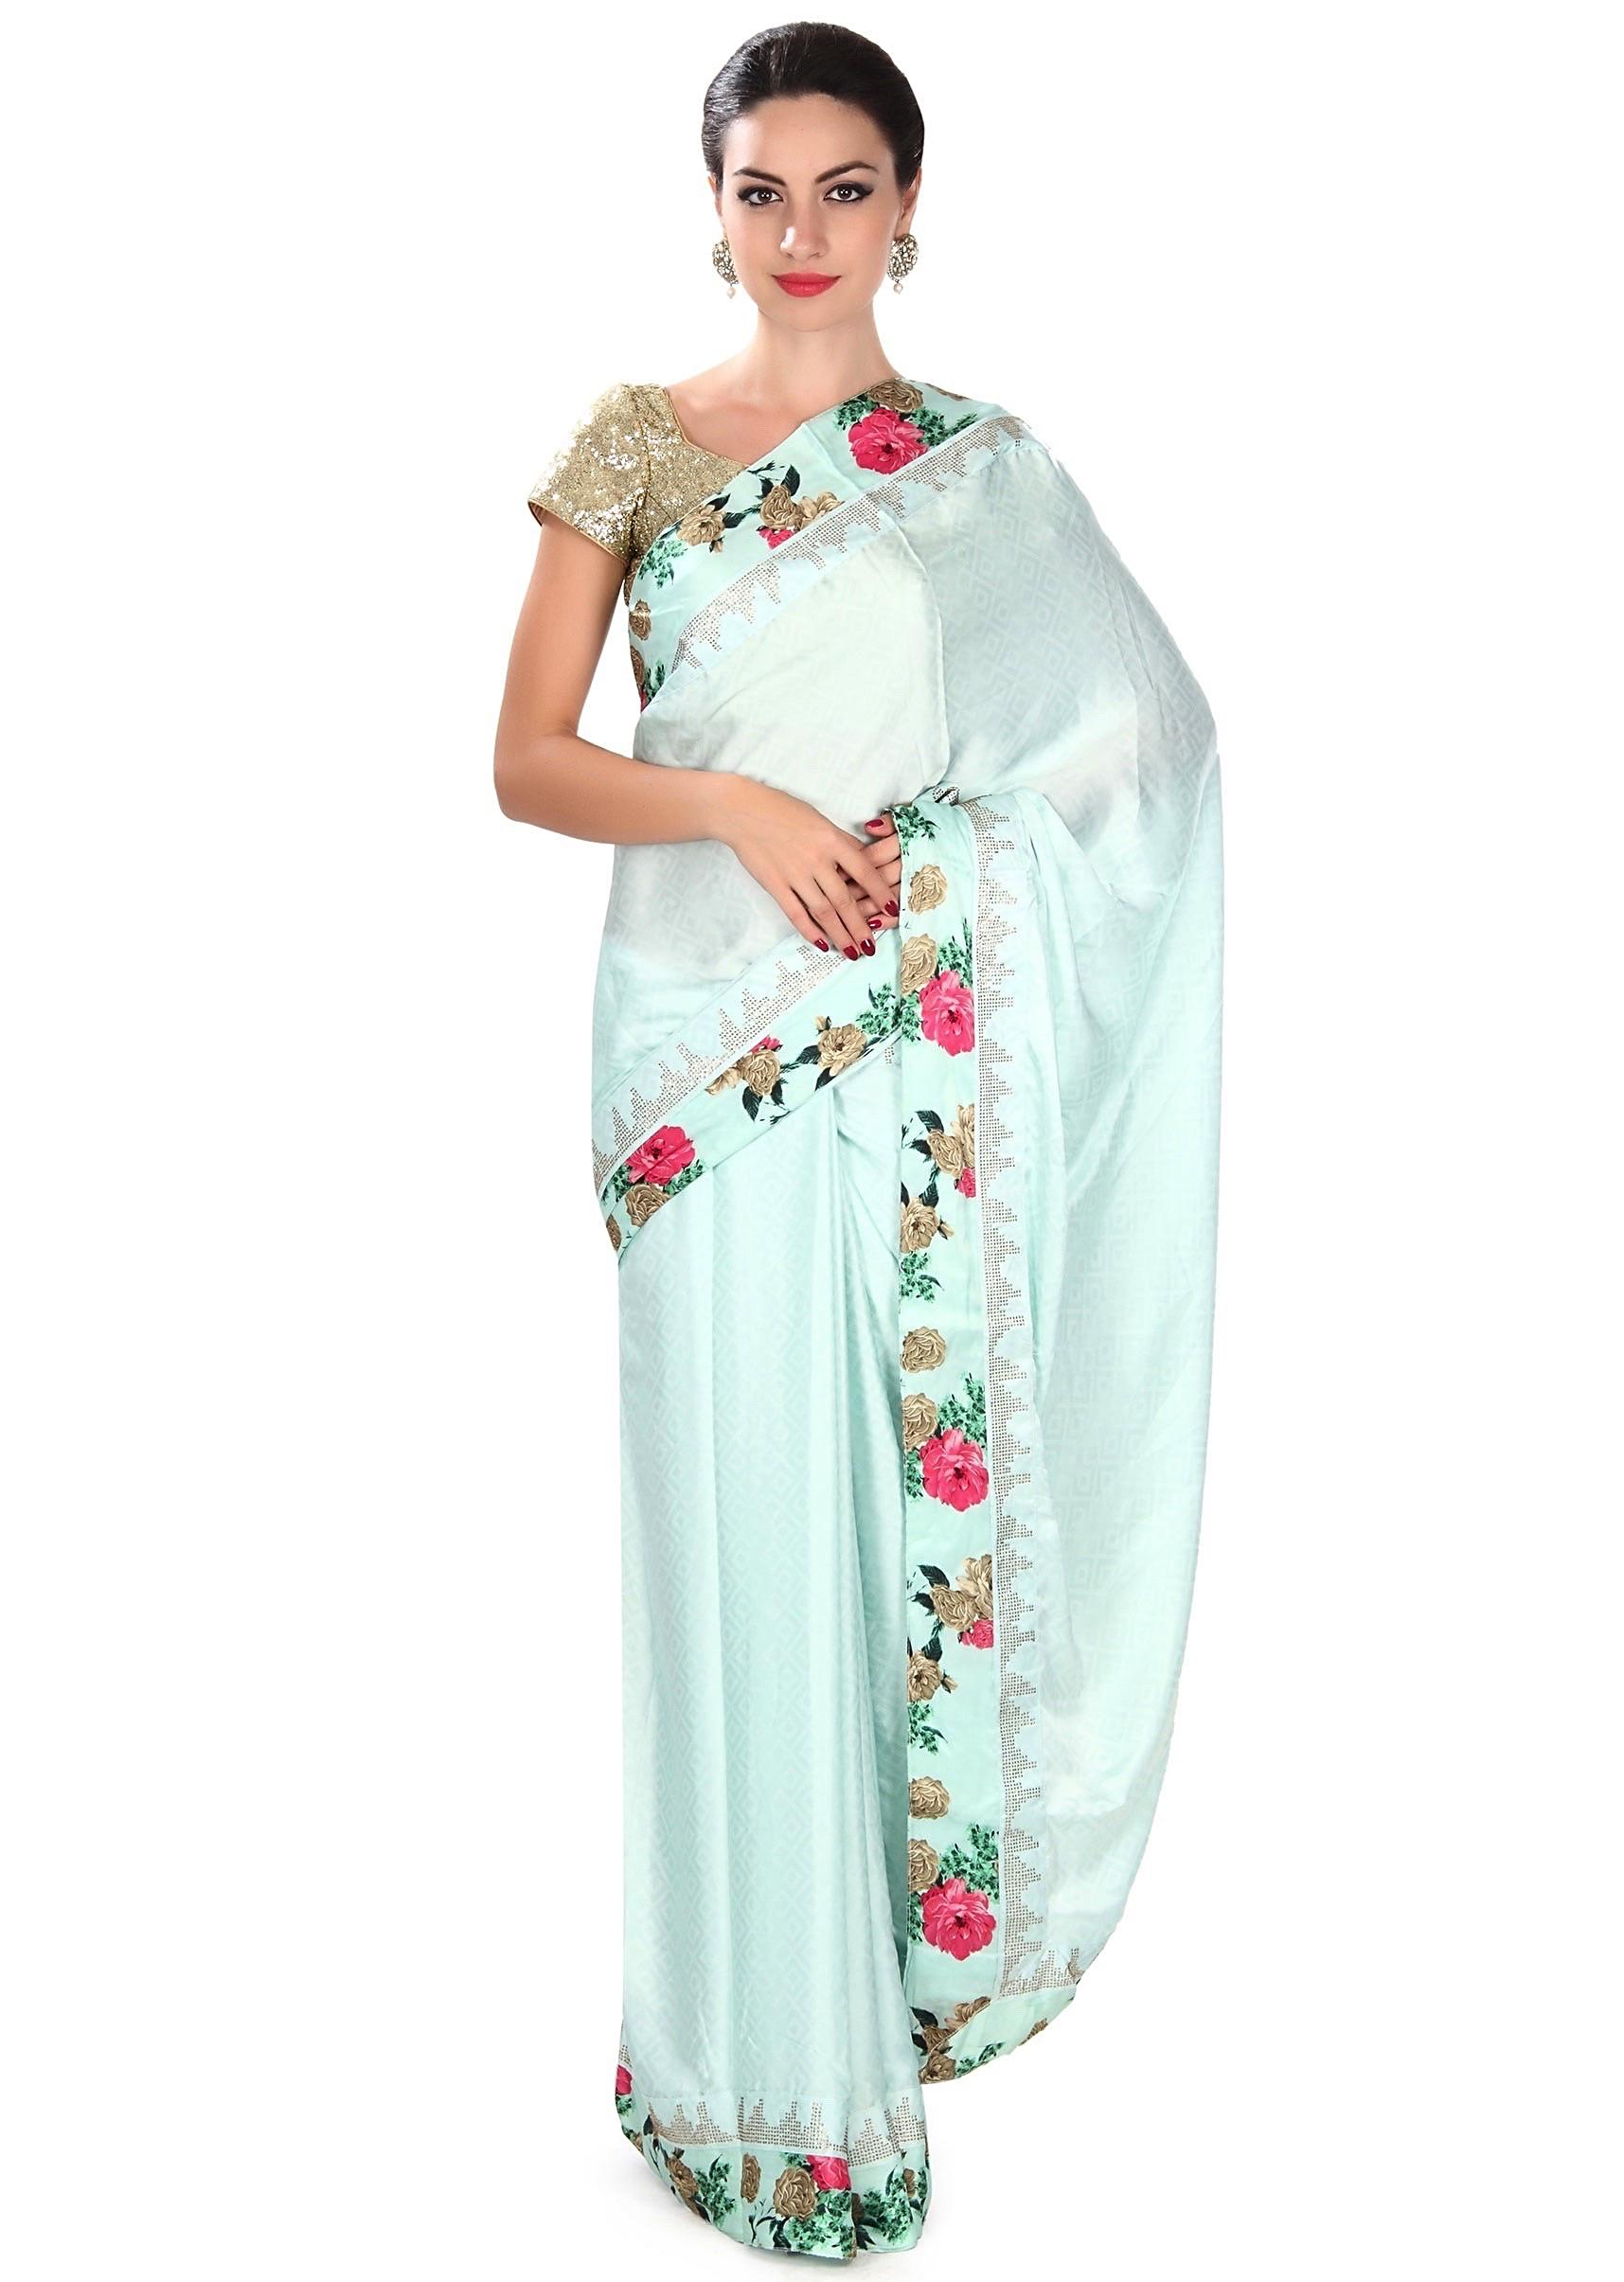 b1f8e4c6aef94 Angel blue saree adorn in floral and kundan border only on KalkiMore Detail